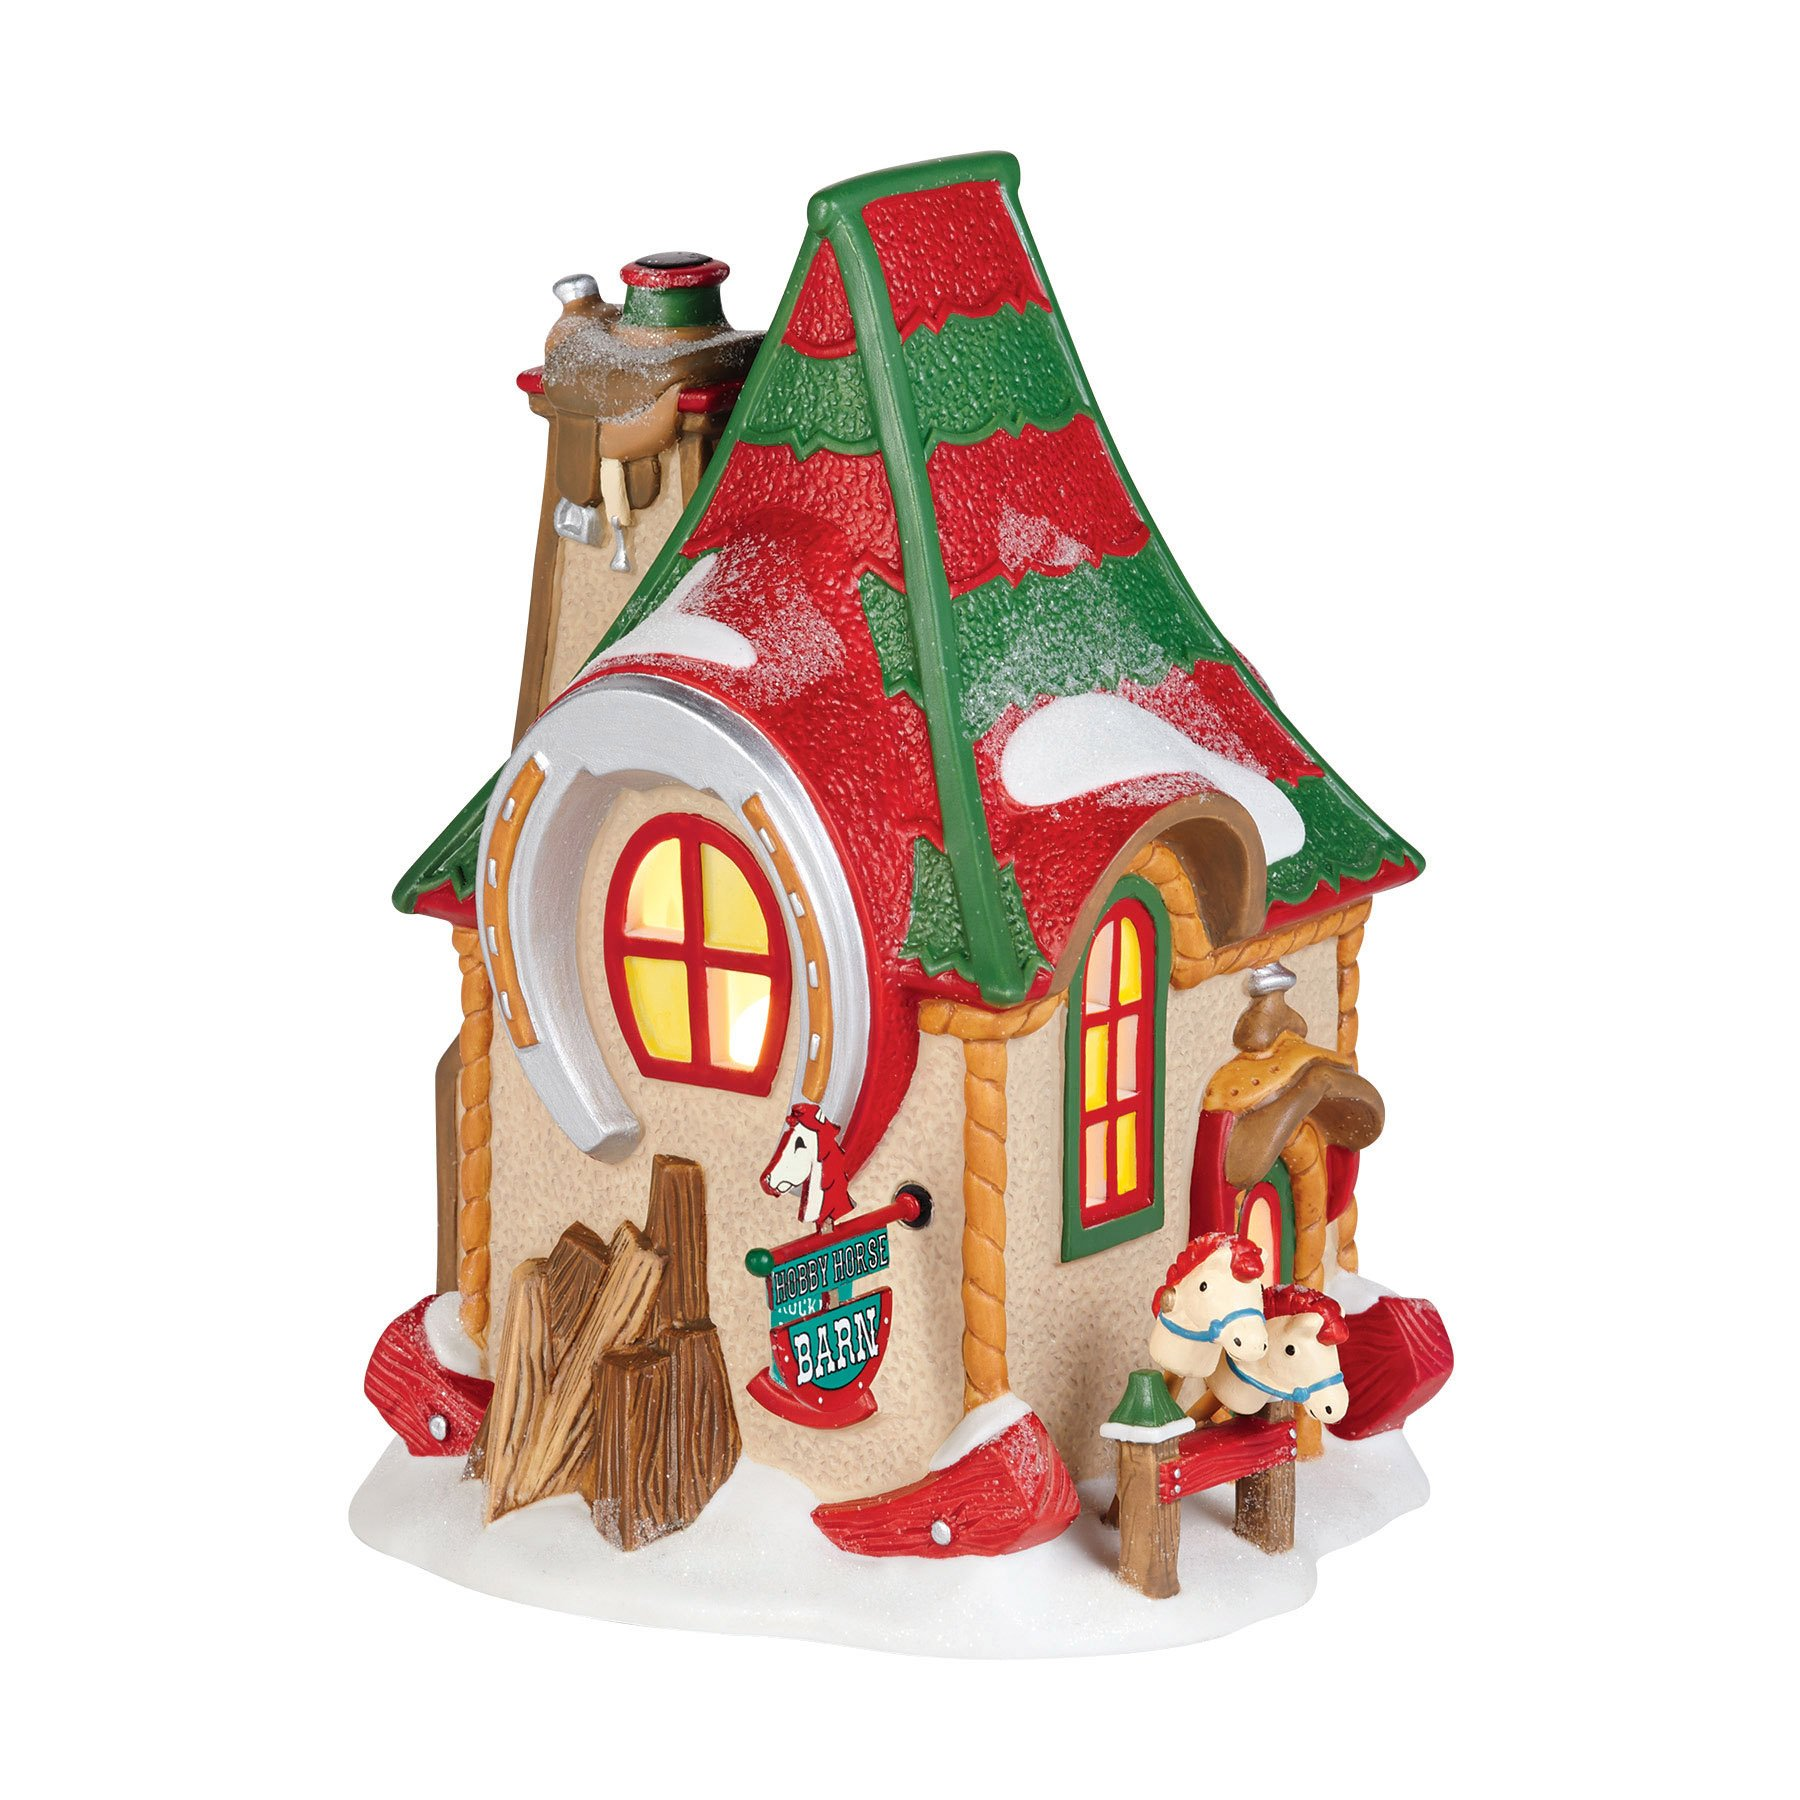 Department 56 North Pole Village Hobby Horse Barn Lit House, 6.69 inch